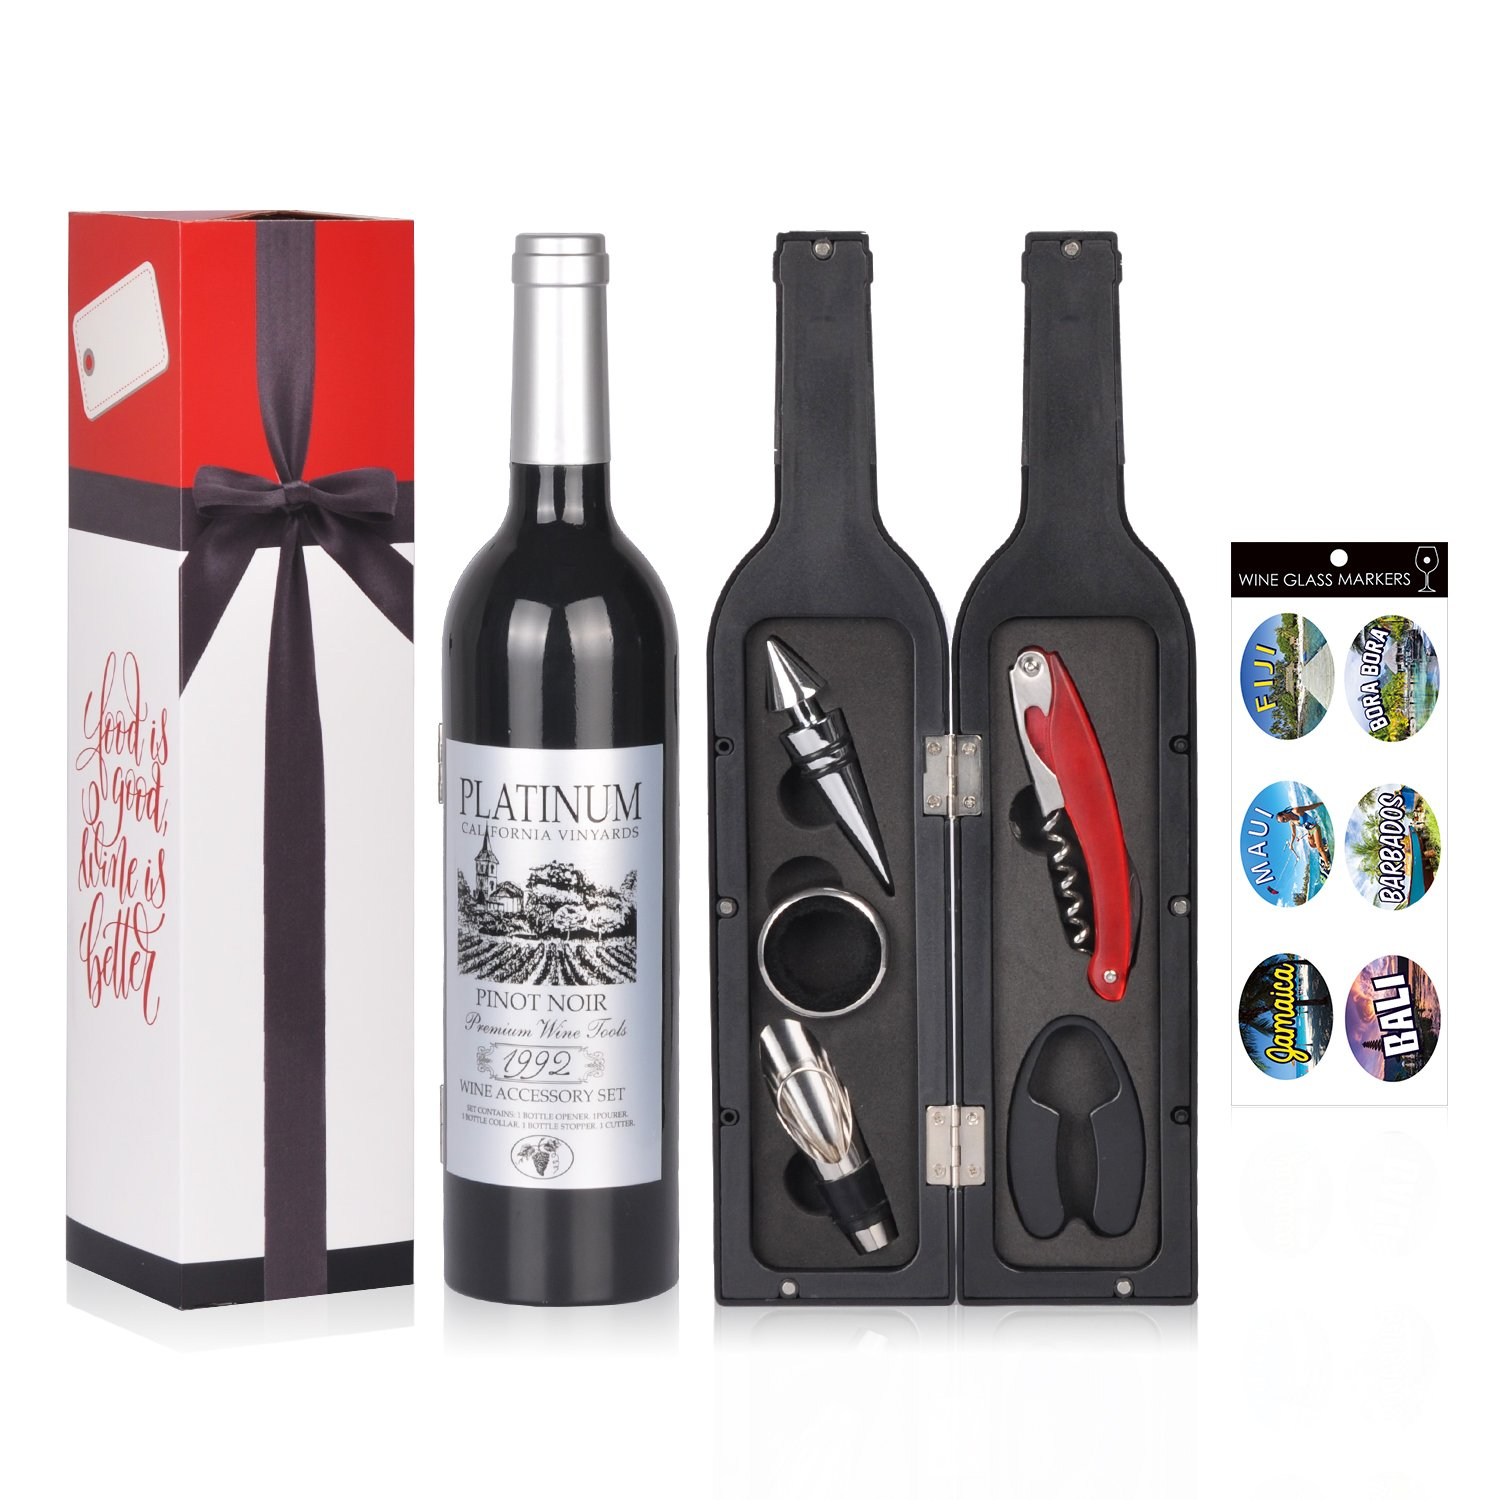 Wine Accessories Gift Set - 5 Pcs Deluxe Wine Corkscrew Opener Sets Bottle Shape in Elegant Gift Box, Great Wine Gifts Idea for Wine Lovers, Friends, Anniversary Friend of Vines